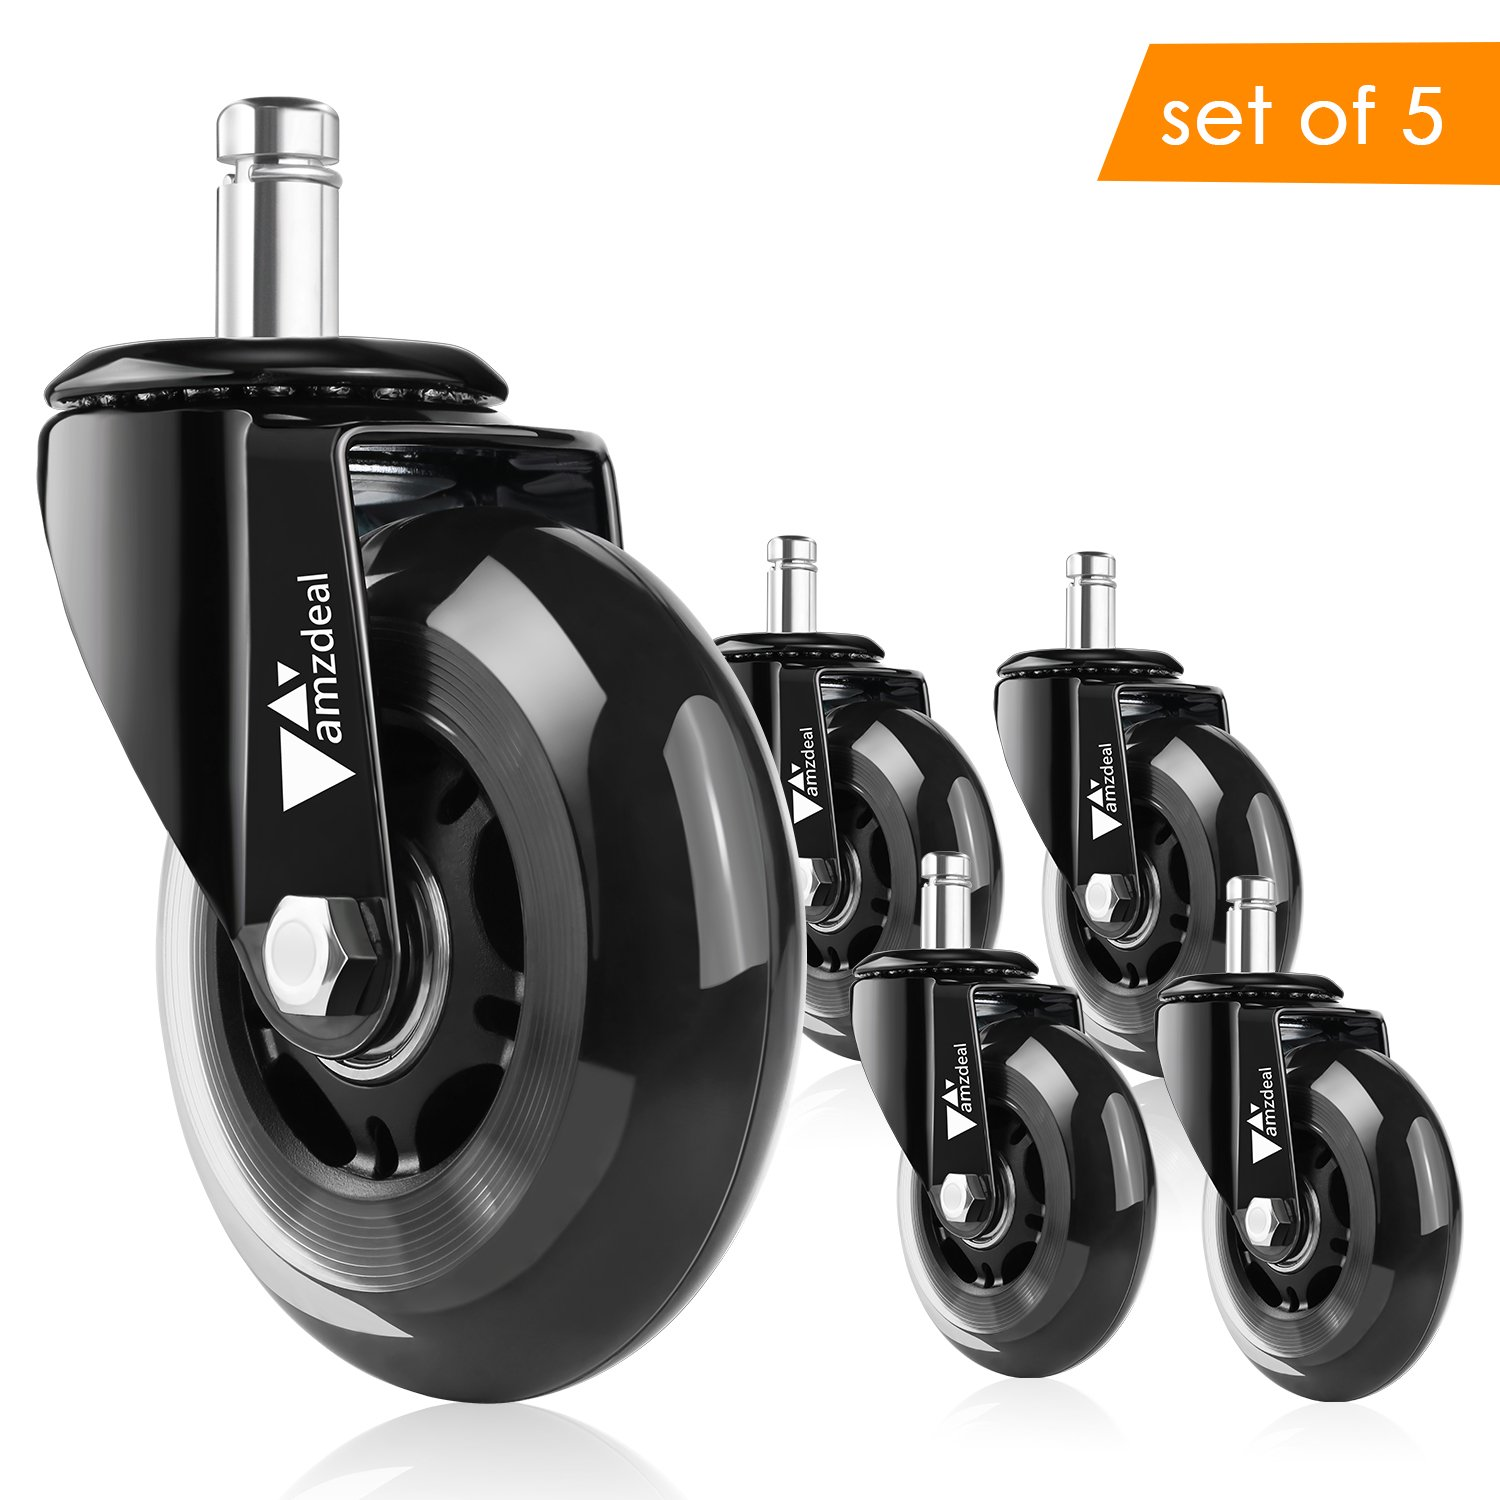 Office Chair Caster Wheels Amzdeal Office Chair Replacement Rollerblade Wheels Heavy Duty & Safe for All Floors with Standard Stem Diameter(Set of 5)